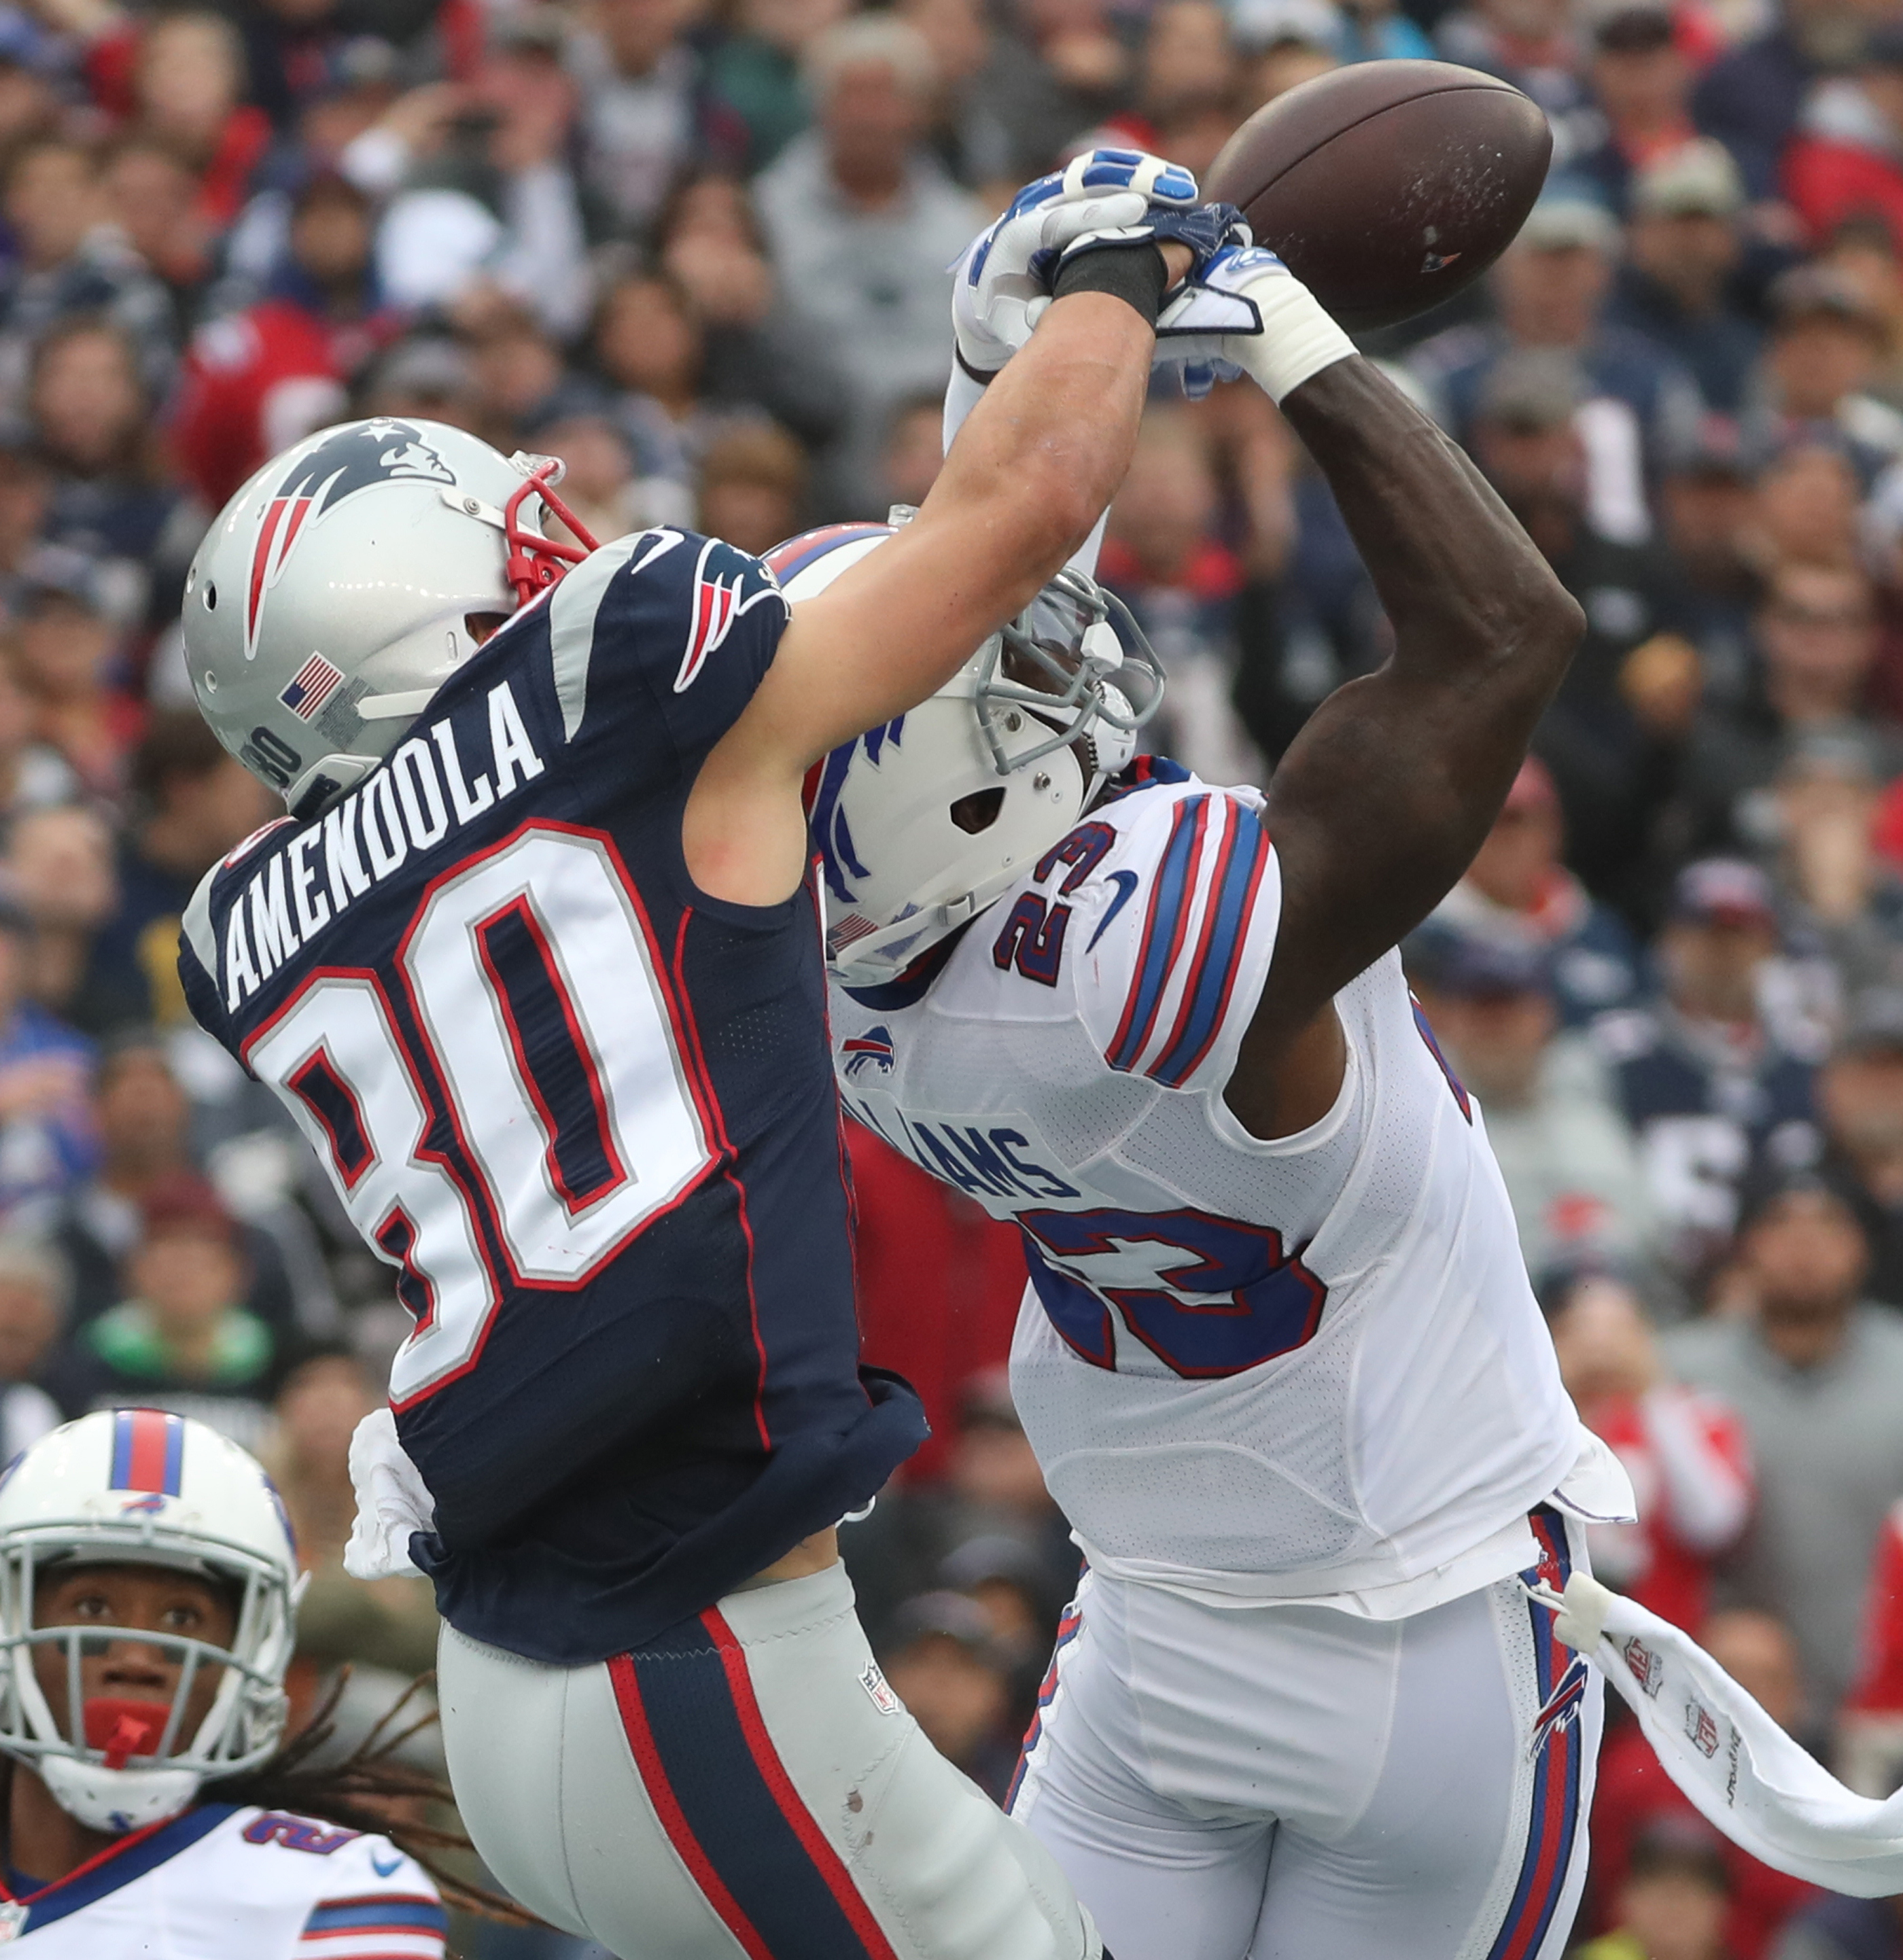 Buffalo Bills strong safety Aaron Williams (23) breaks up a pass intended for New England Patriots wide receiver Danny Amendola (80) in the end zone in the third quarter. (James P. McCoy/ Buffalo News)